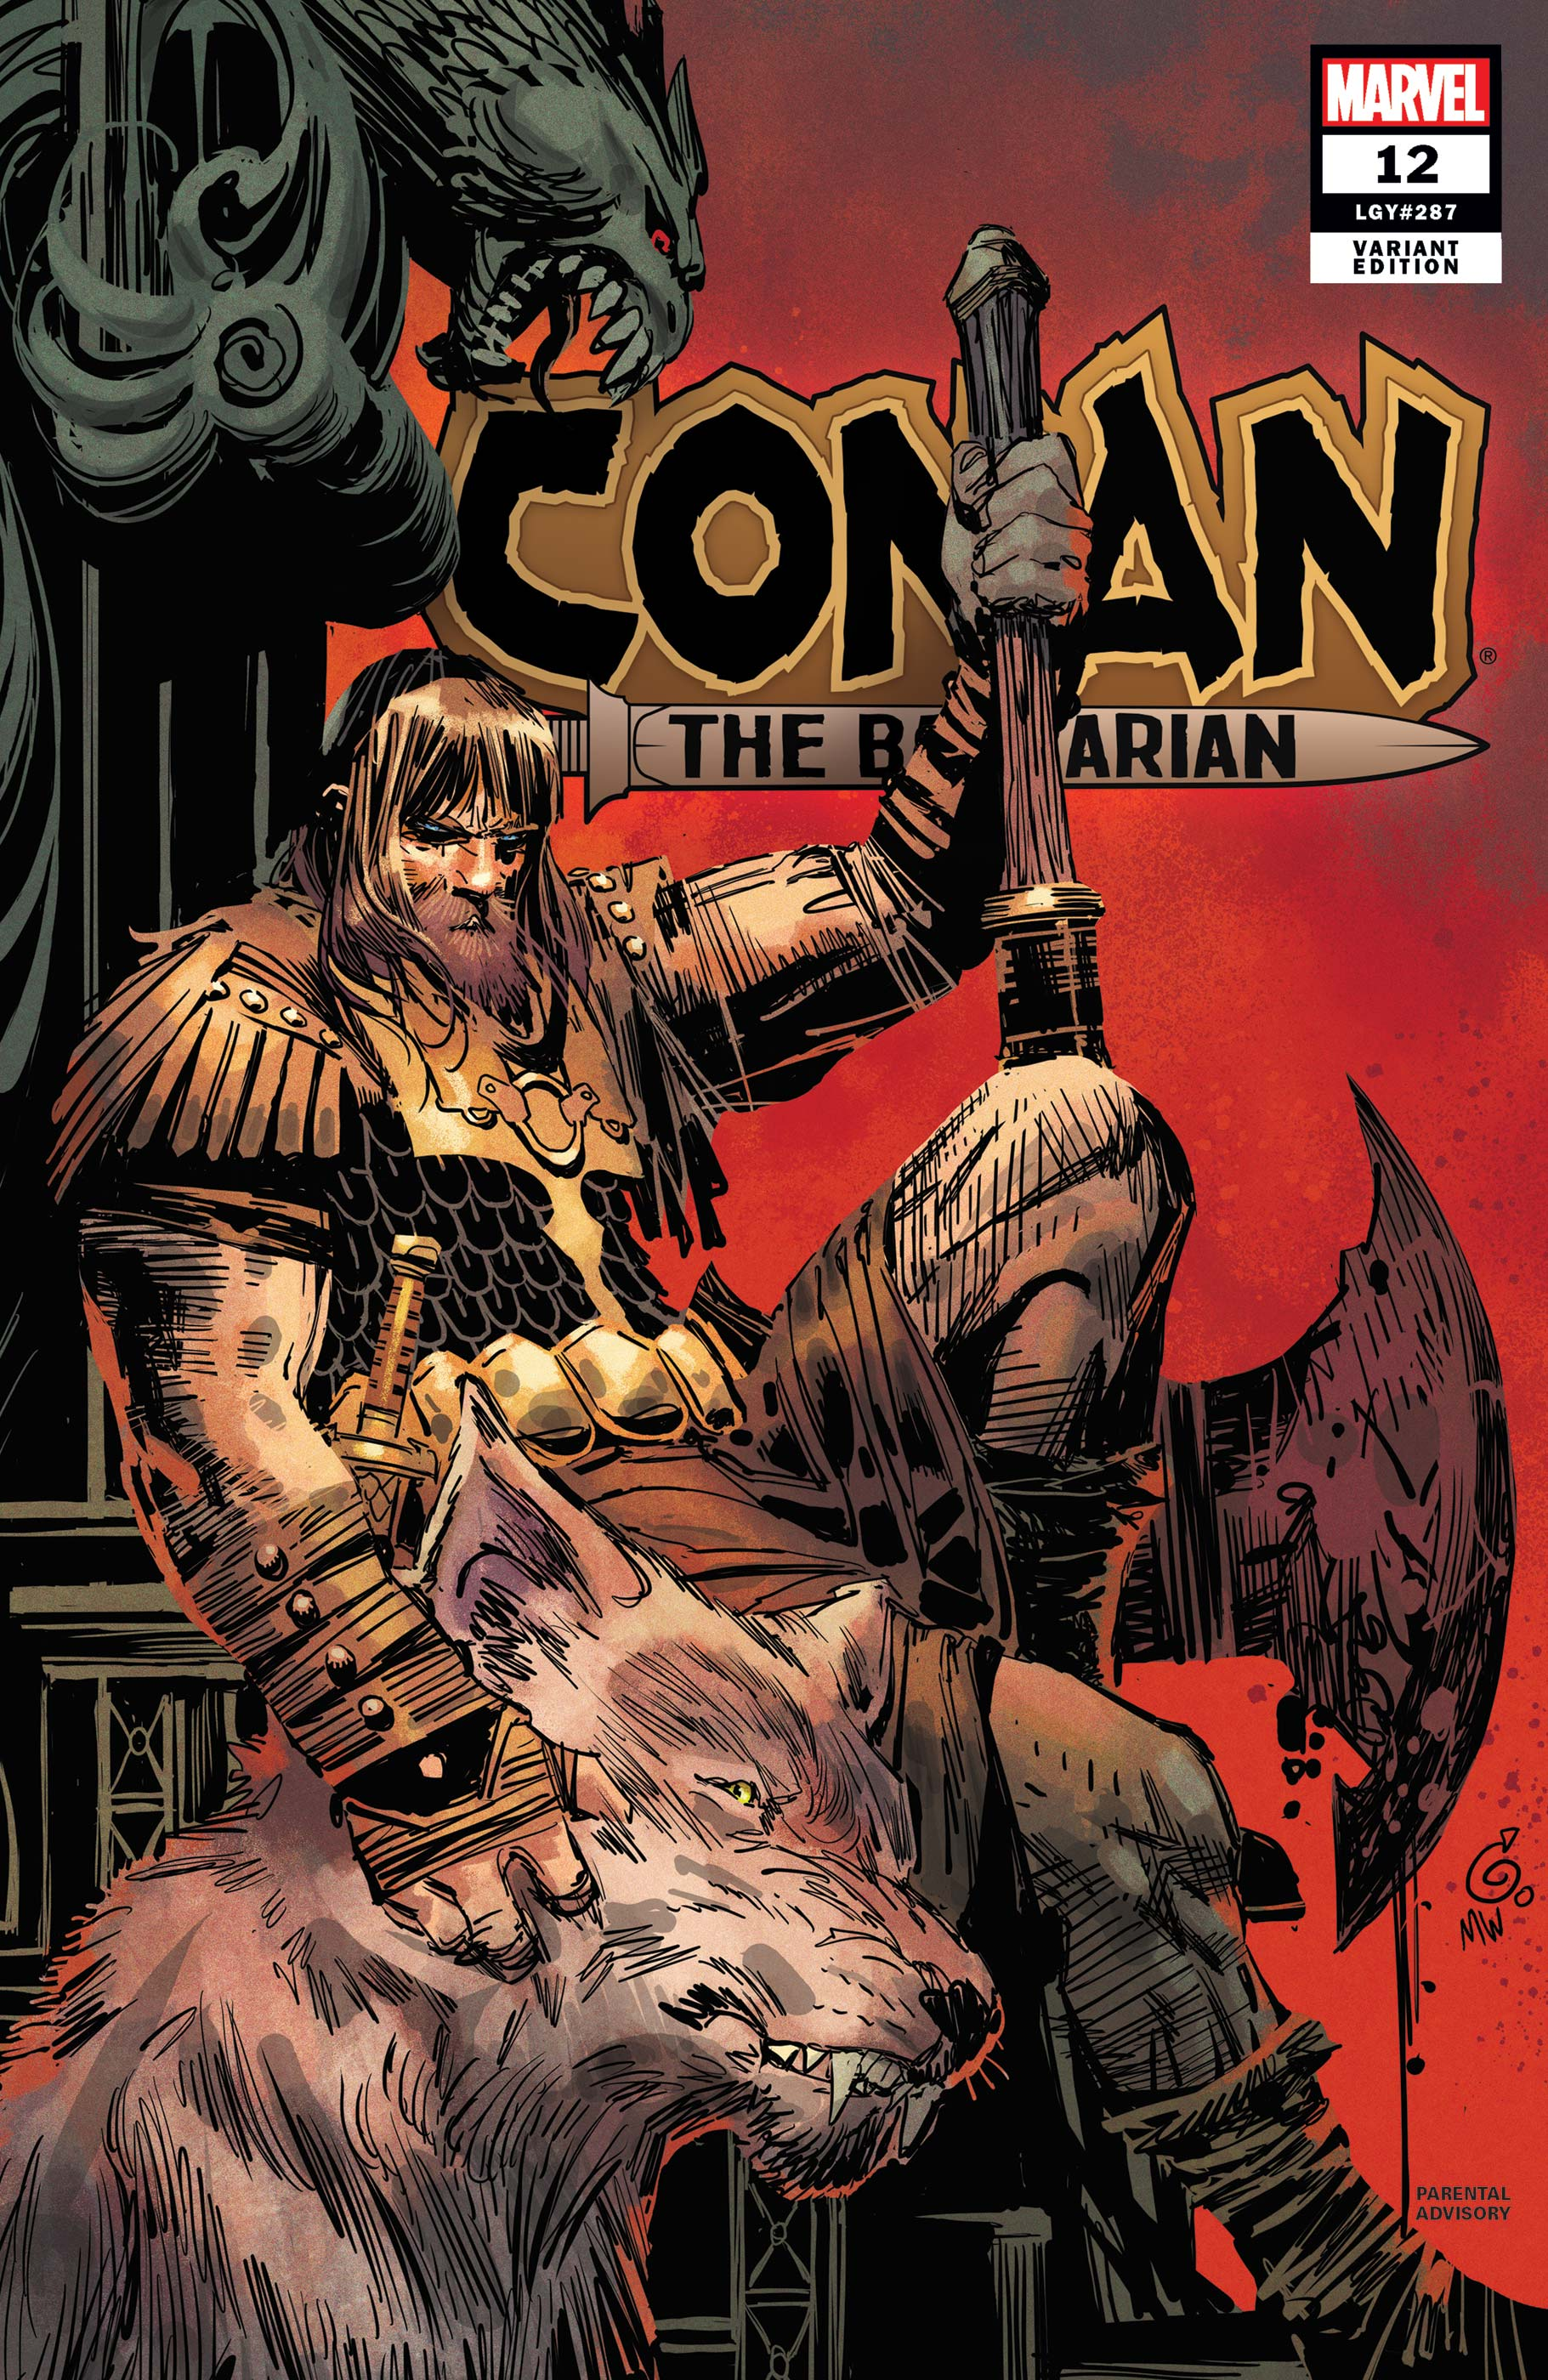 Conan the Barbarian (2019) #12 (Variant)